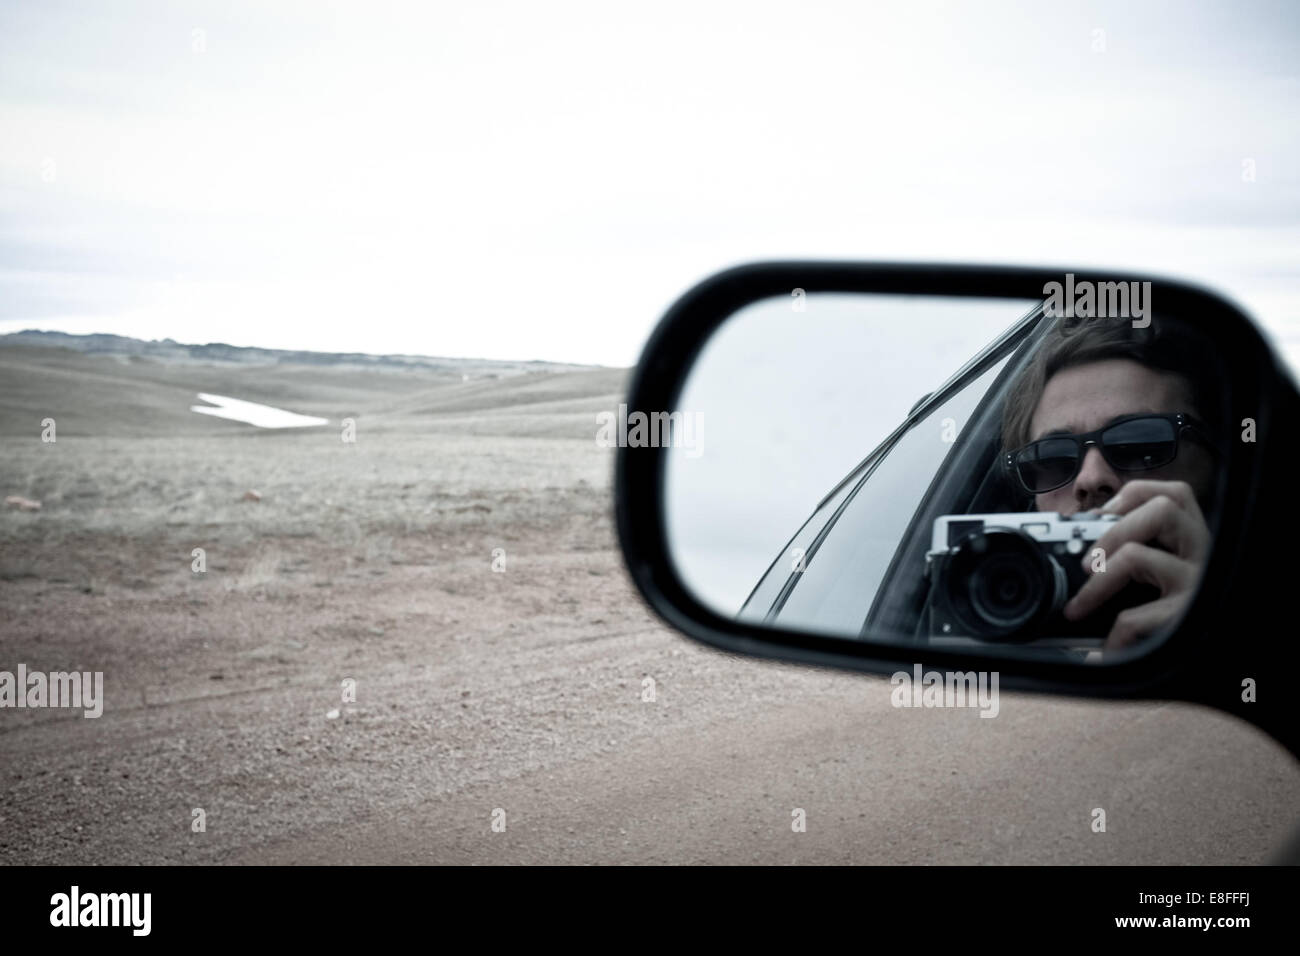 Woman reflecting in side mirror - Stock Image